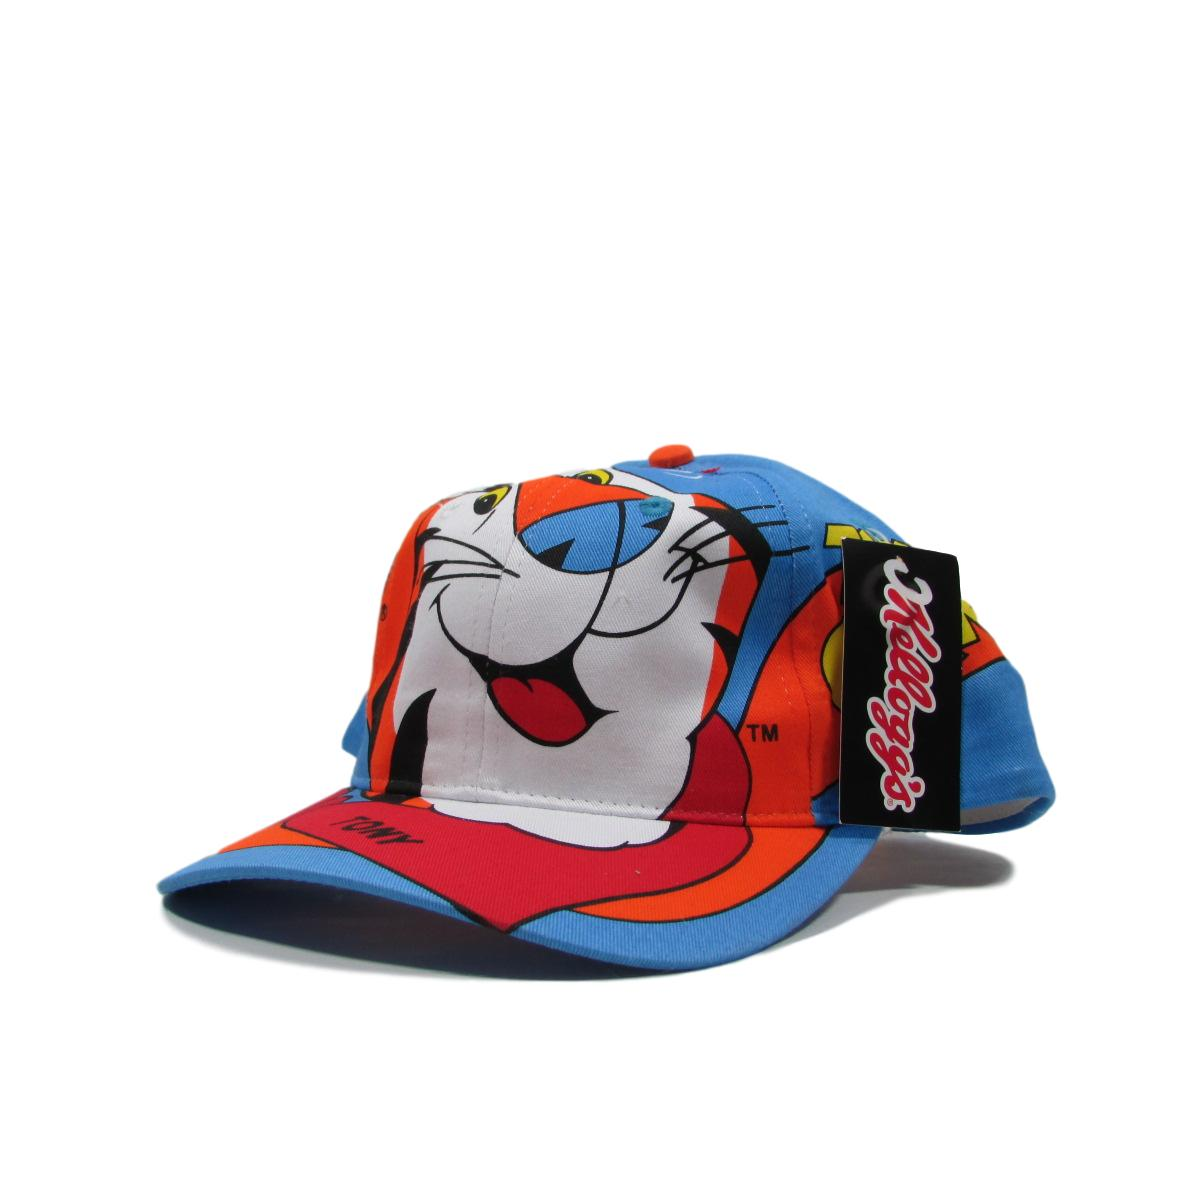 Tony The Tiger Mascot Kelloggs Cereal Cartoon Snapback Hat Deadstock